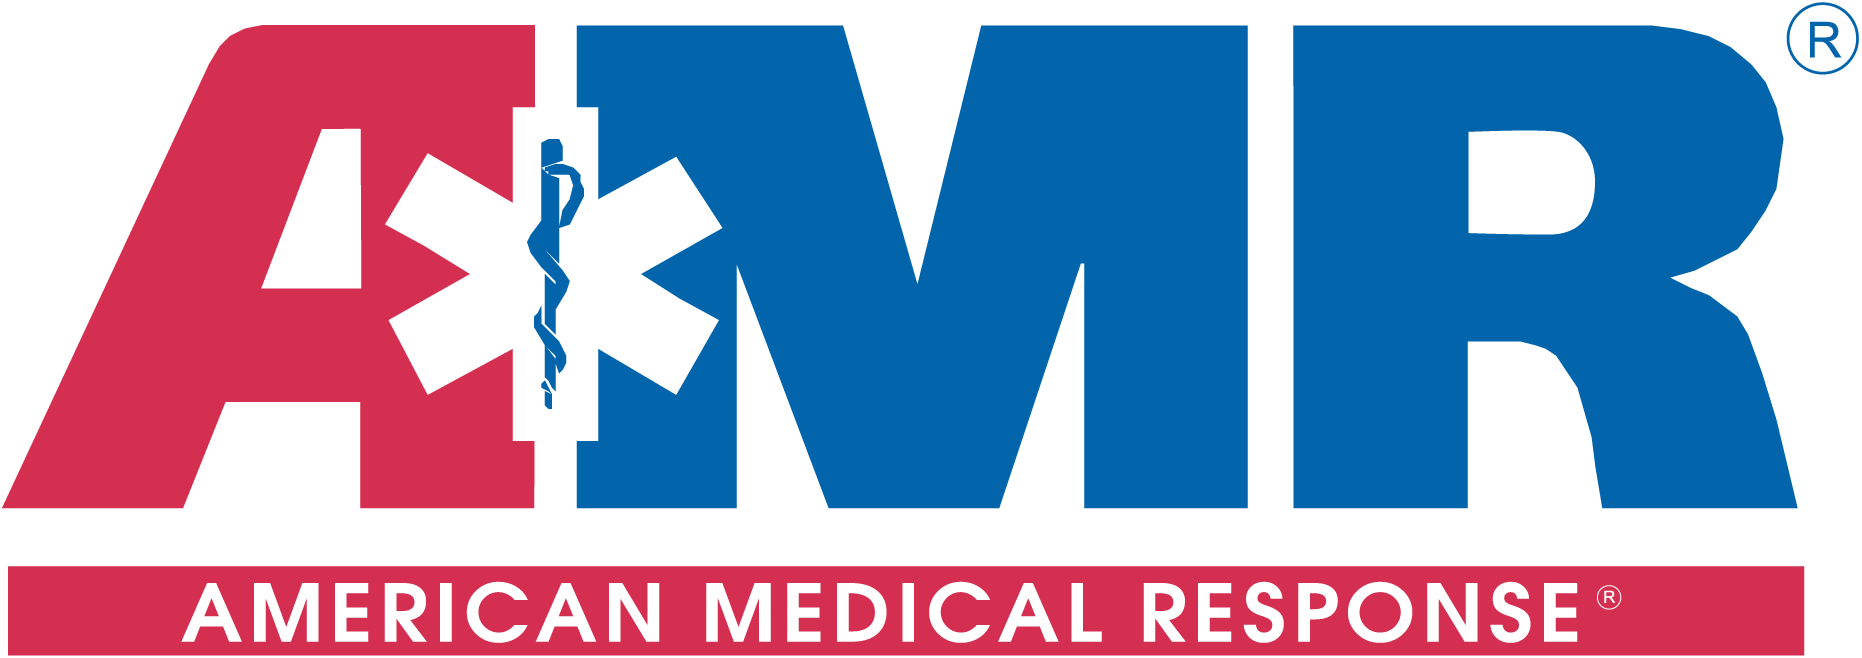 American_Medical_Response_Logo.png